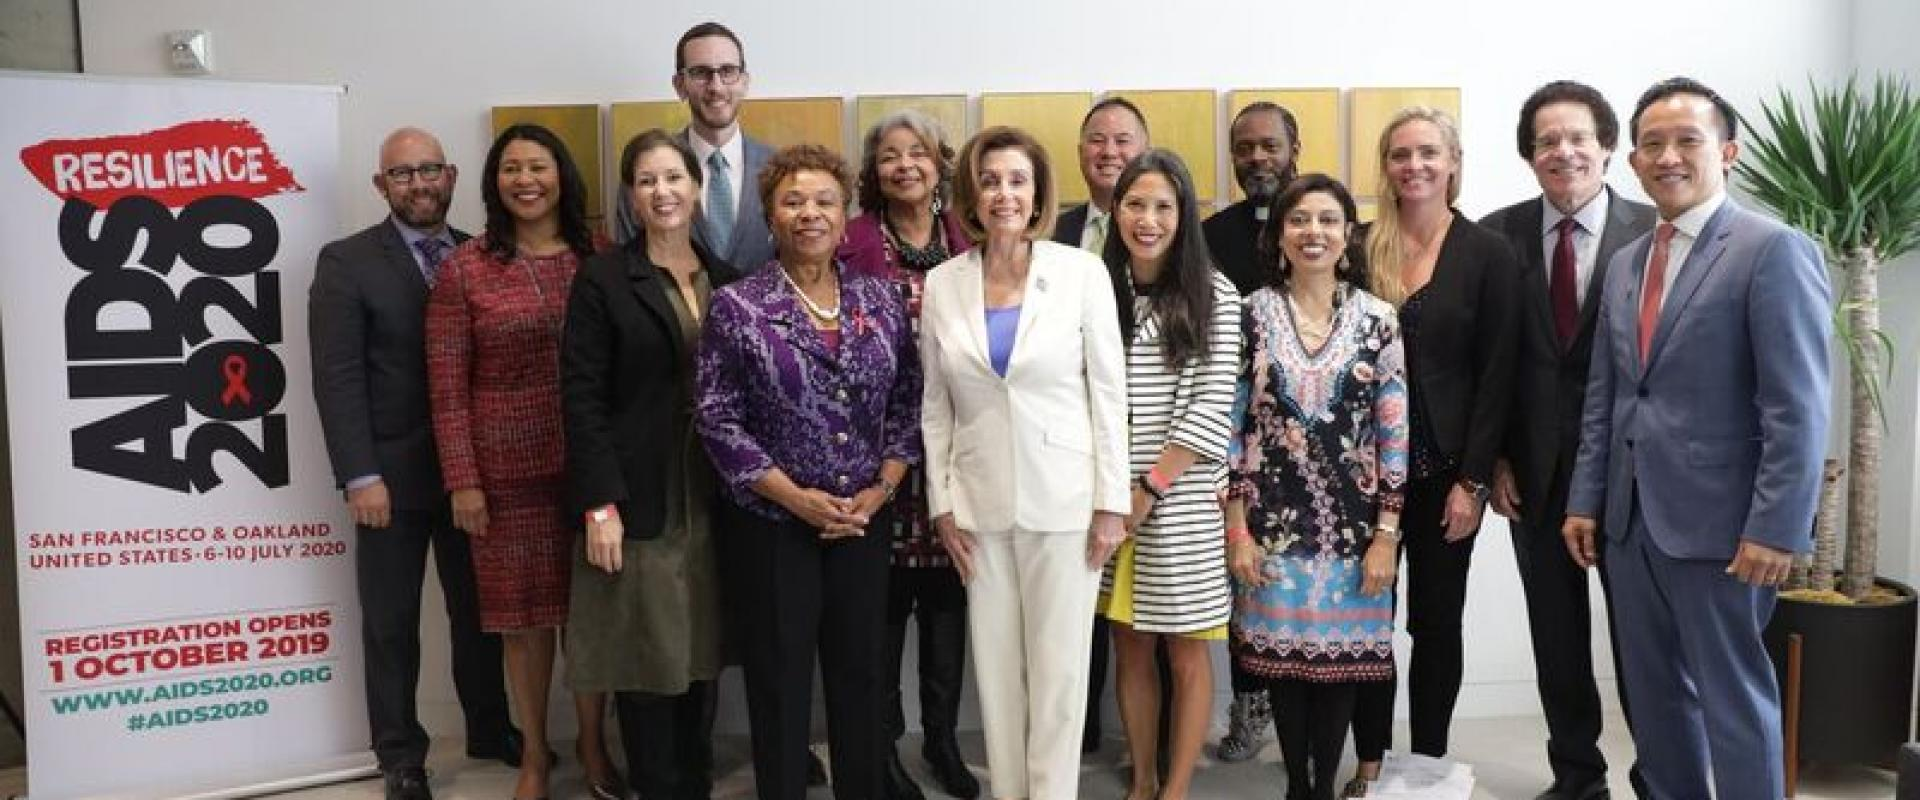 "Congresswomen Nancy Pelosi and Barbara Lee join state and local leaders to kick off the 23rd Annual International AIDS Conference, ""Resilience,"" which will take place June 2020 in San Francisco and Oakland. The Conference, coming back to the Bay Area for"